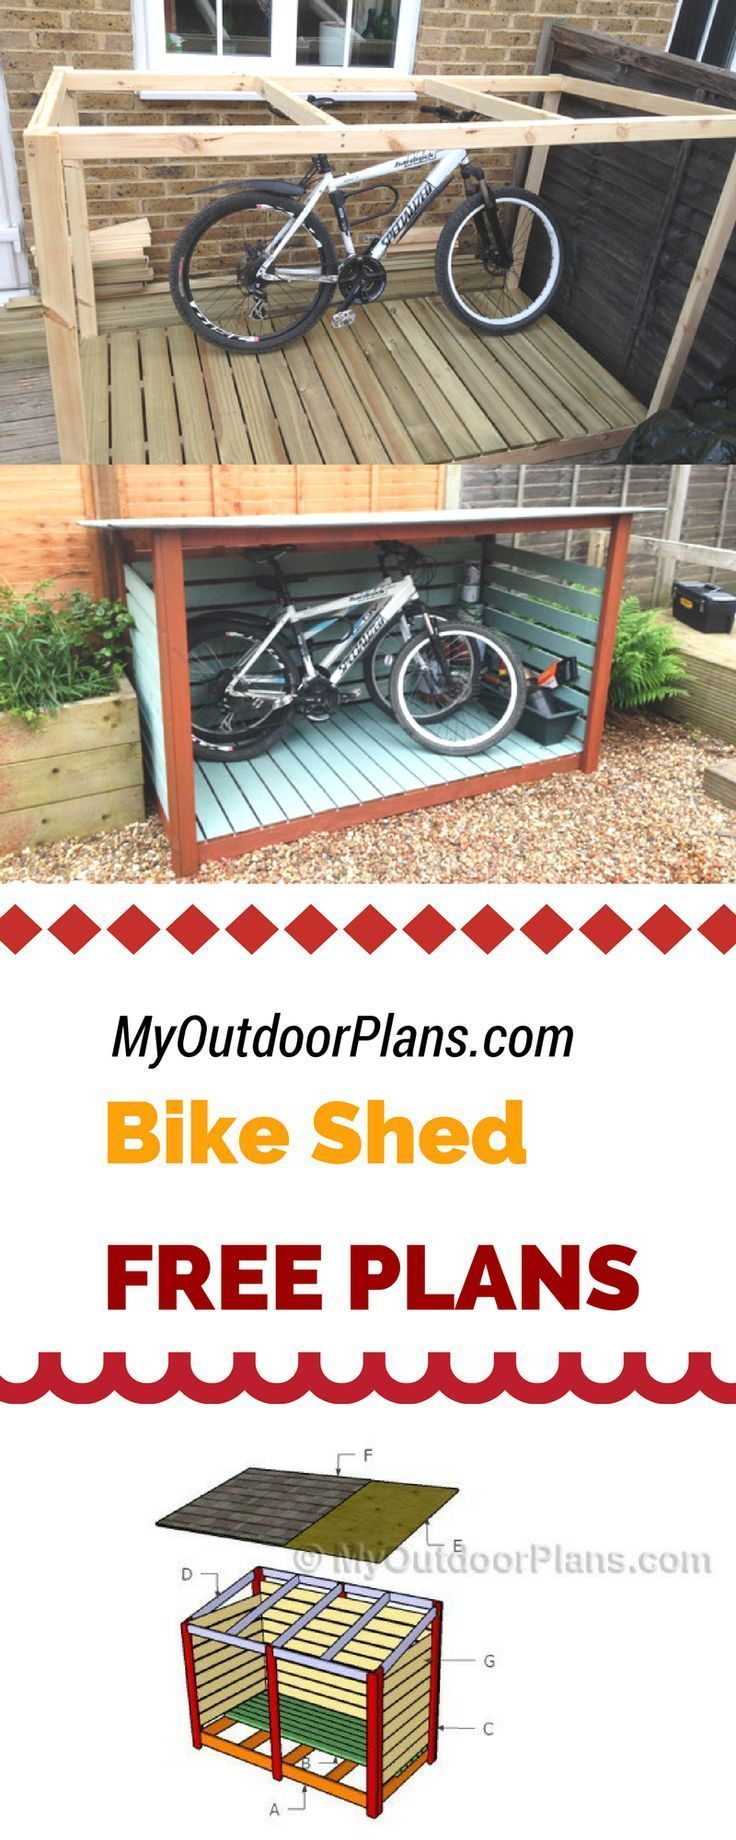 Learn how to build a bike shed with my free plans and instructions! A simple bi